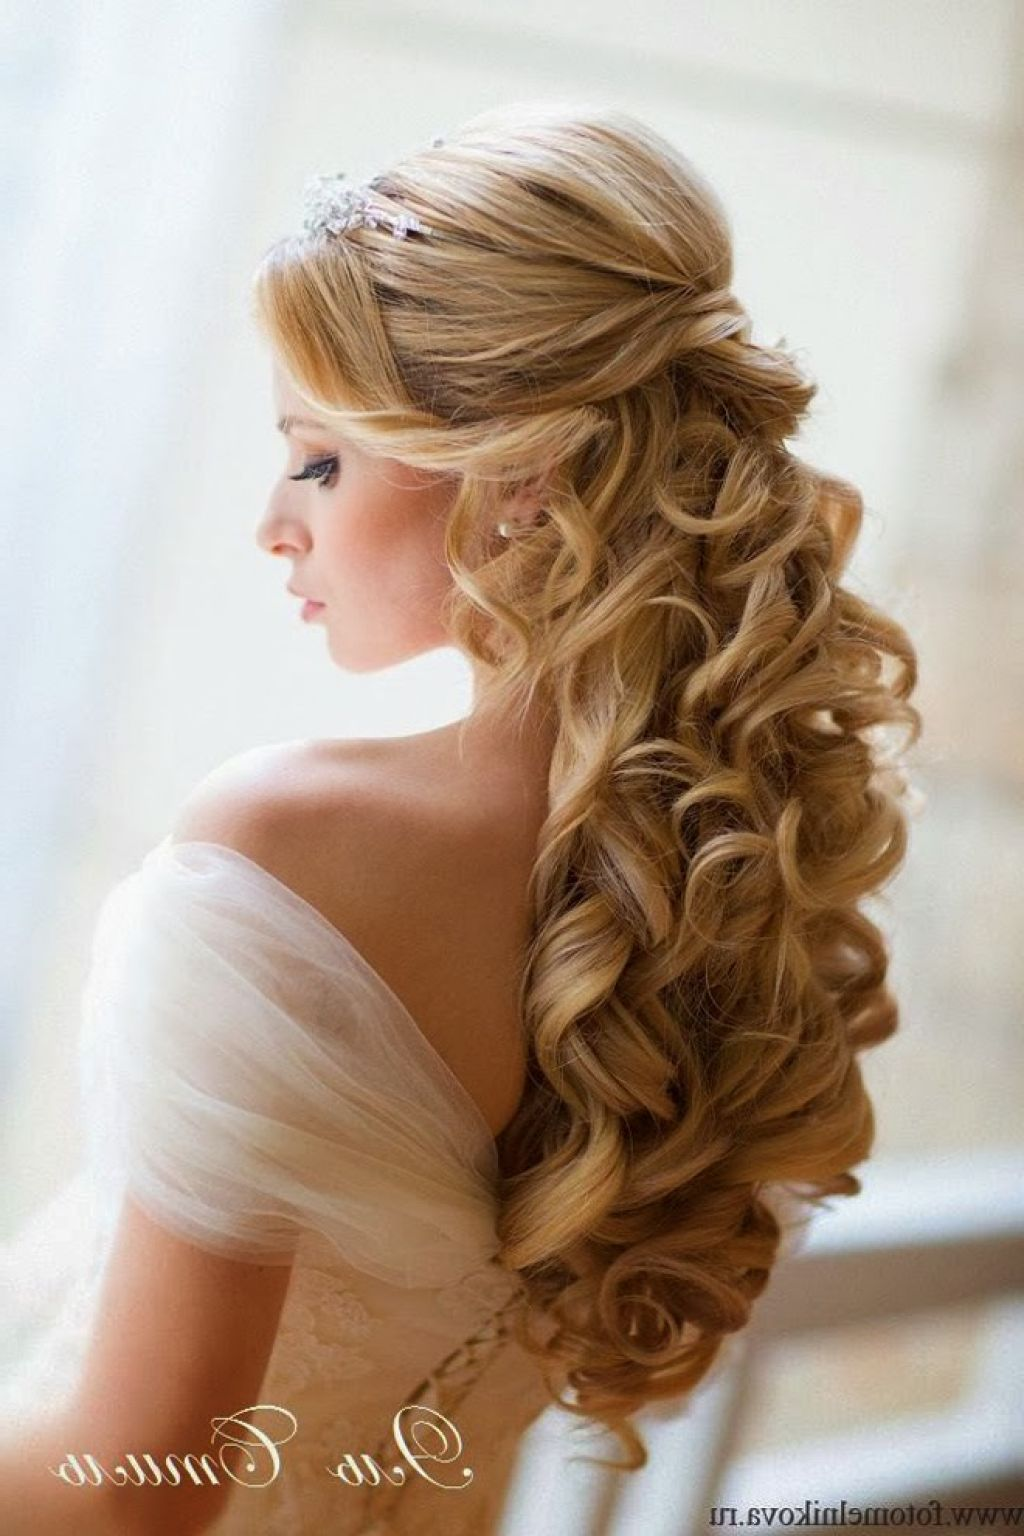 half up, half down prom hairstyles can be elegant and